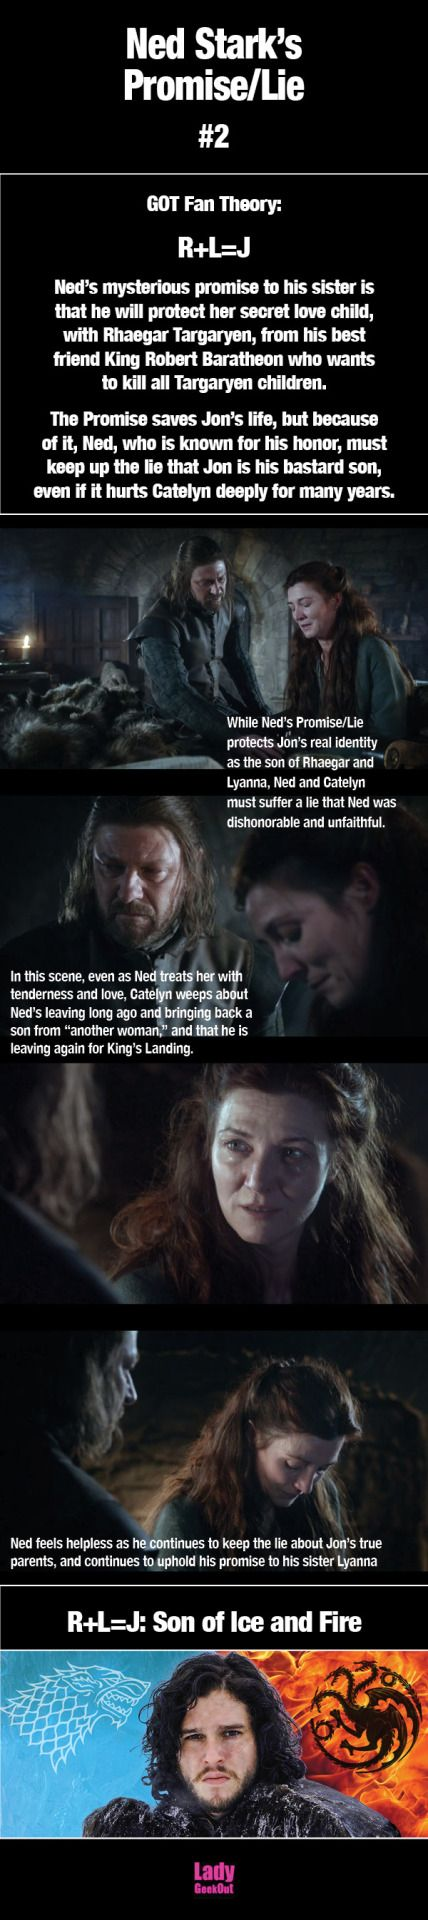 Jon is the son of ice and fire! GOT Fan Theory: R+L=J. Ned's mysterious promise to his sister isthat he'll protect her secret love child,son of Rhaegar Targaryen, from his BFF King Robert Baratheon who wantsto kill all Targaryen children. The Promise saves Jon's life, but becauseof it, Ned, who's known for his honor, mustkeep up the lie that Jon is his bastard son,even if it hurts Catelyn deeply. #R+L=J #GOT #ASOIAF #jonsnow #nedstark #lyannastark #sonoficeandfire